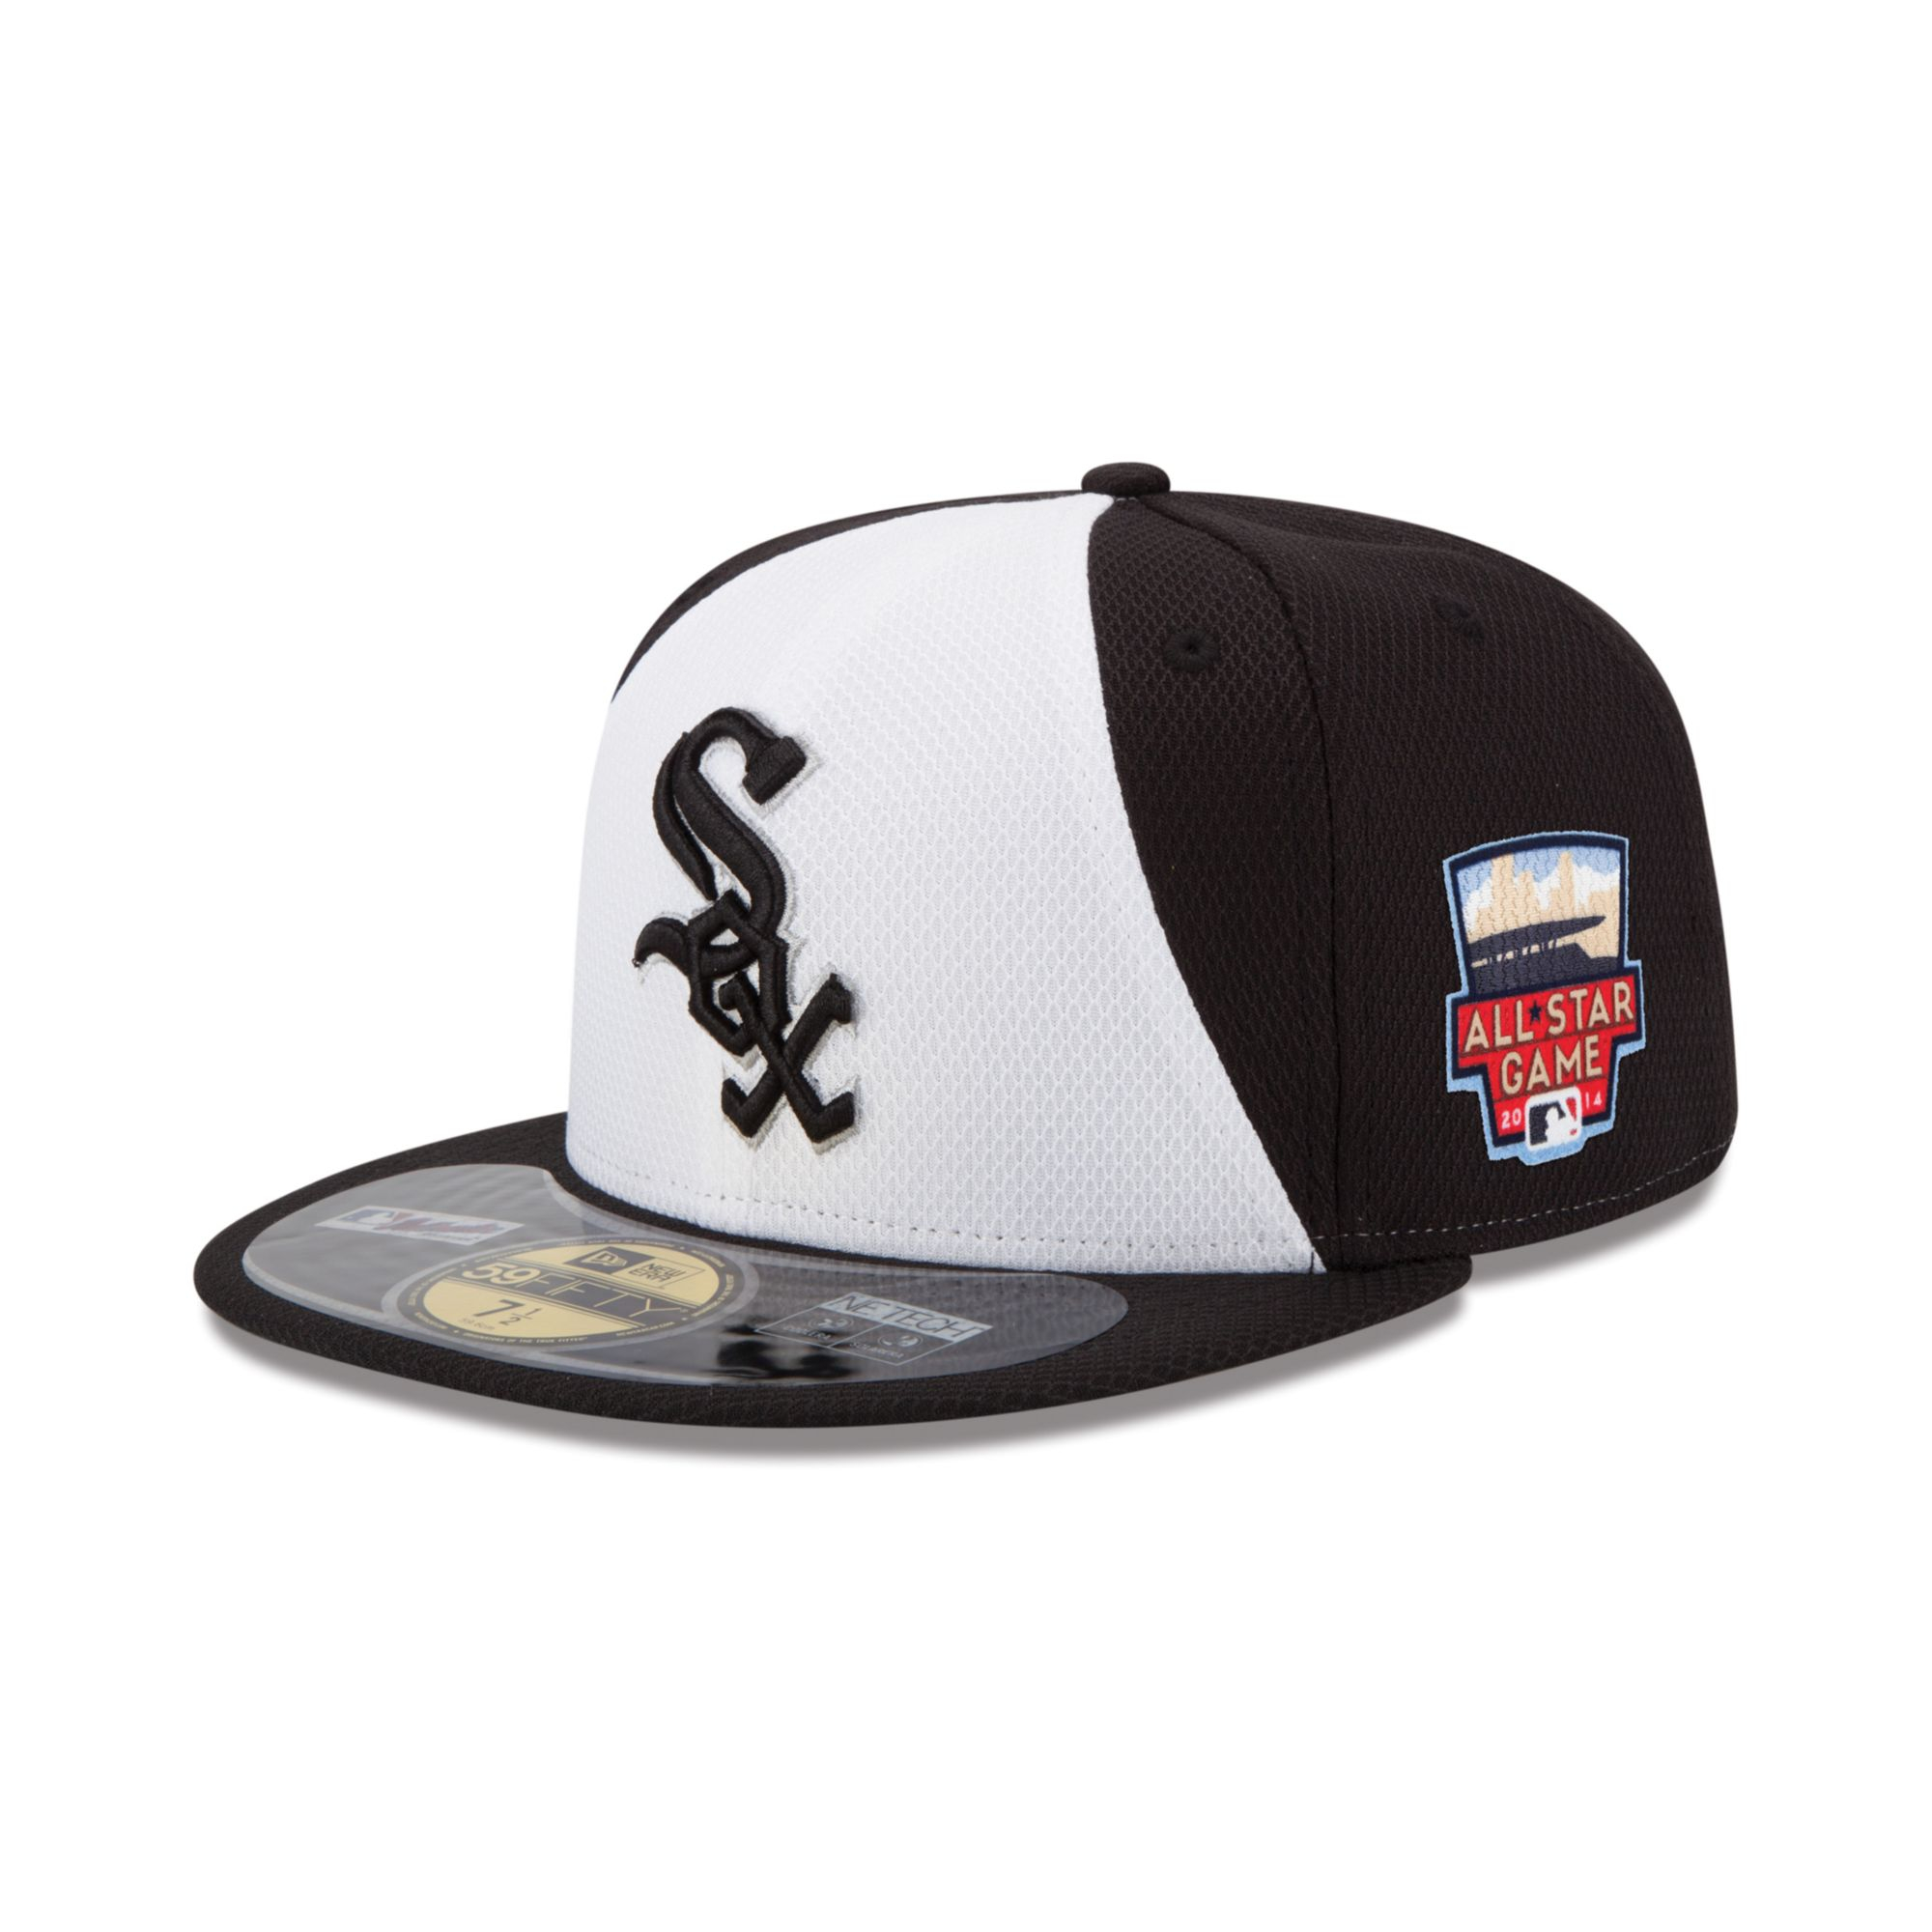 online store e6361 b3d55 ... good lyst ktz chicago white sox all star game patch 59fifty cap in  24e13 04f02 low price chicago white sox new era ...